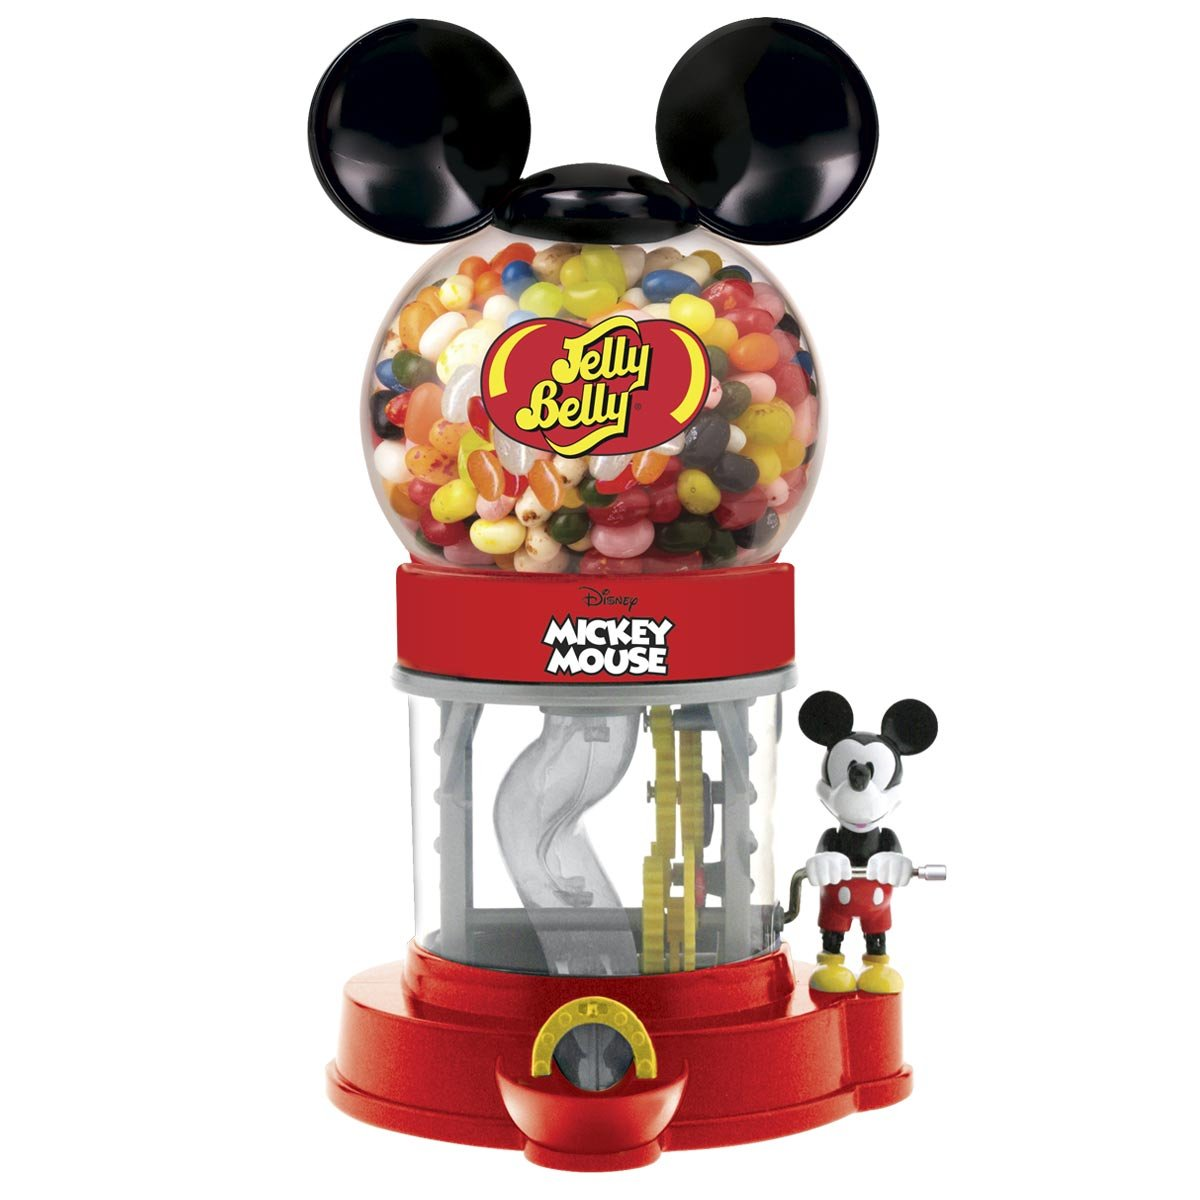 Jelly Belly Disney Mickey Mouse Bean Machine by Jelly Belly